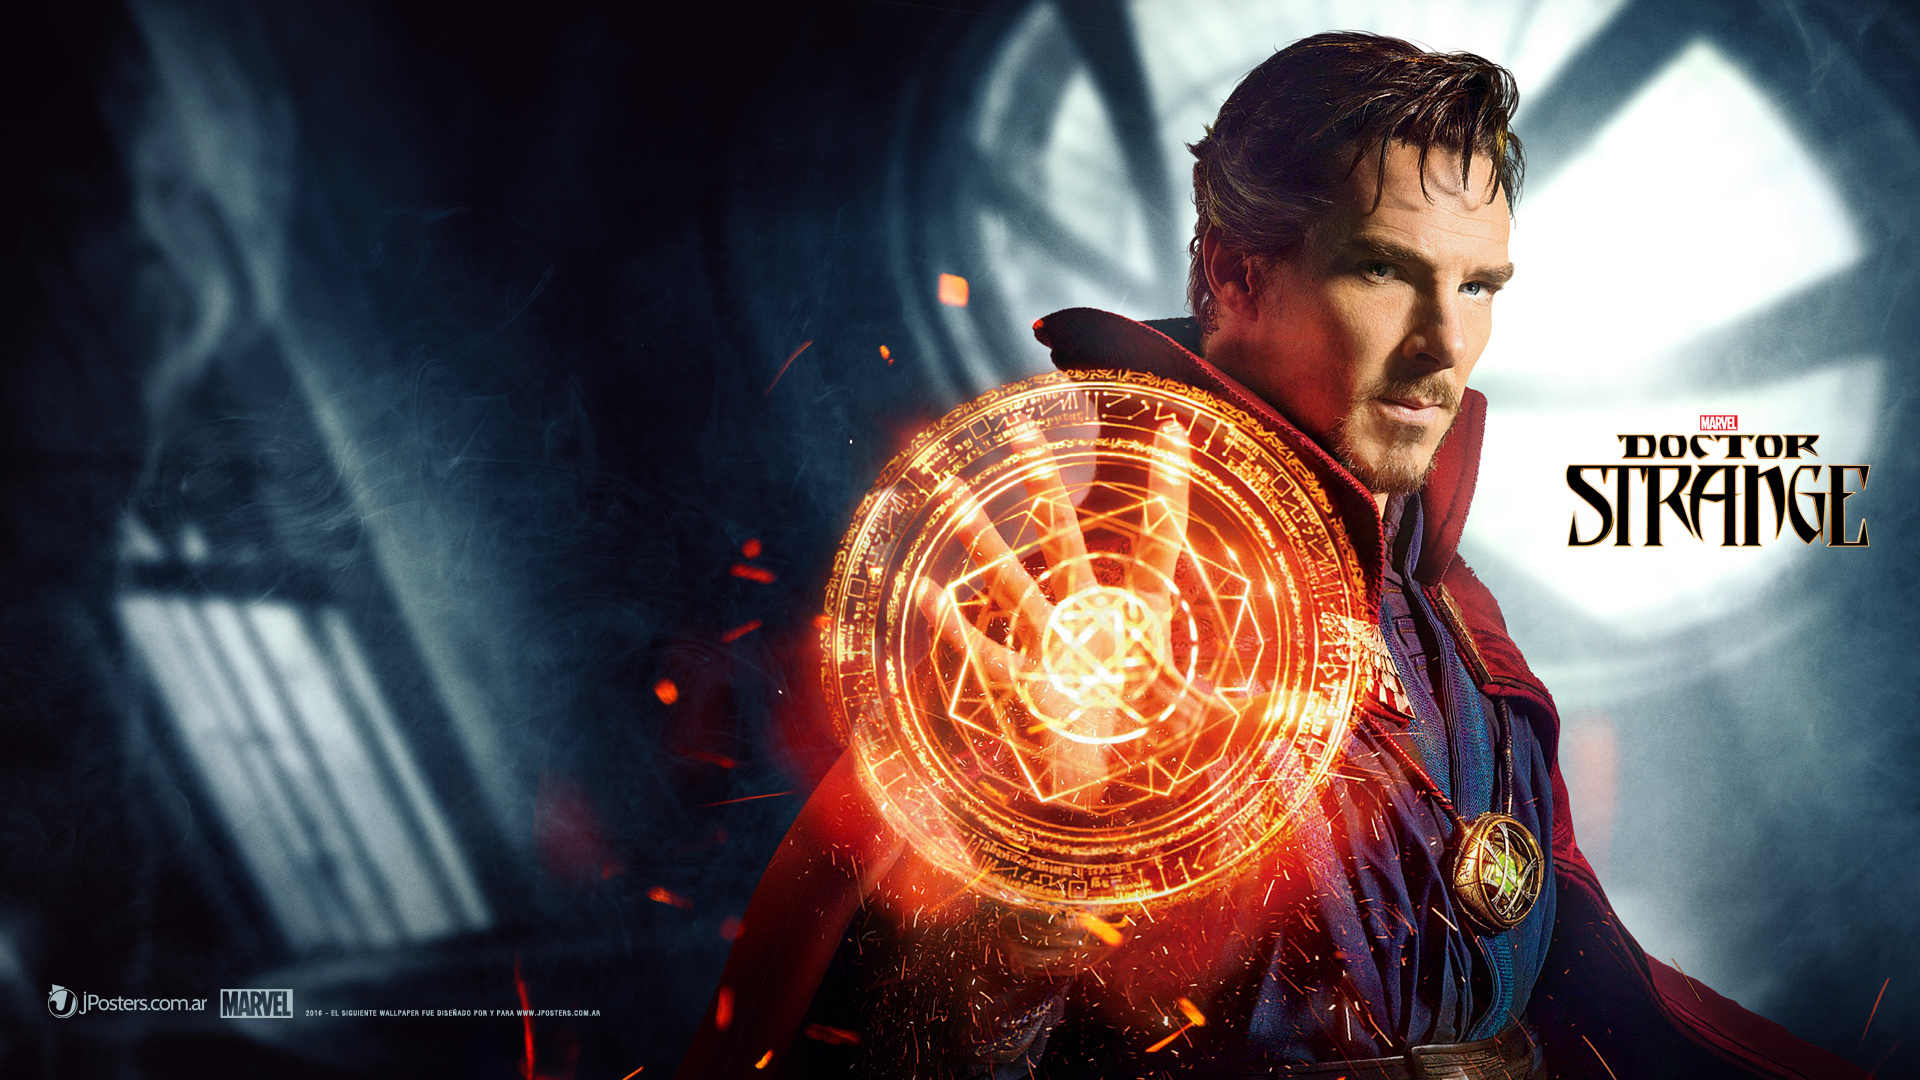 Doctor Strange Ends Its Box Office Run As A Huge Success